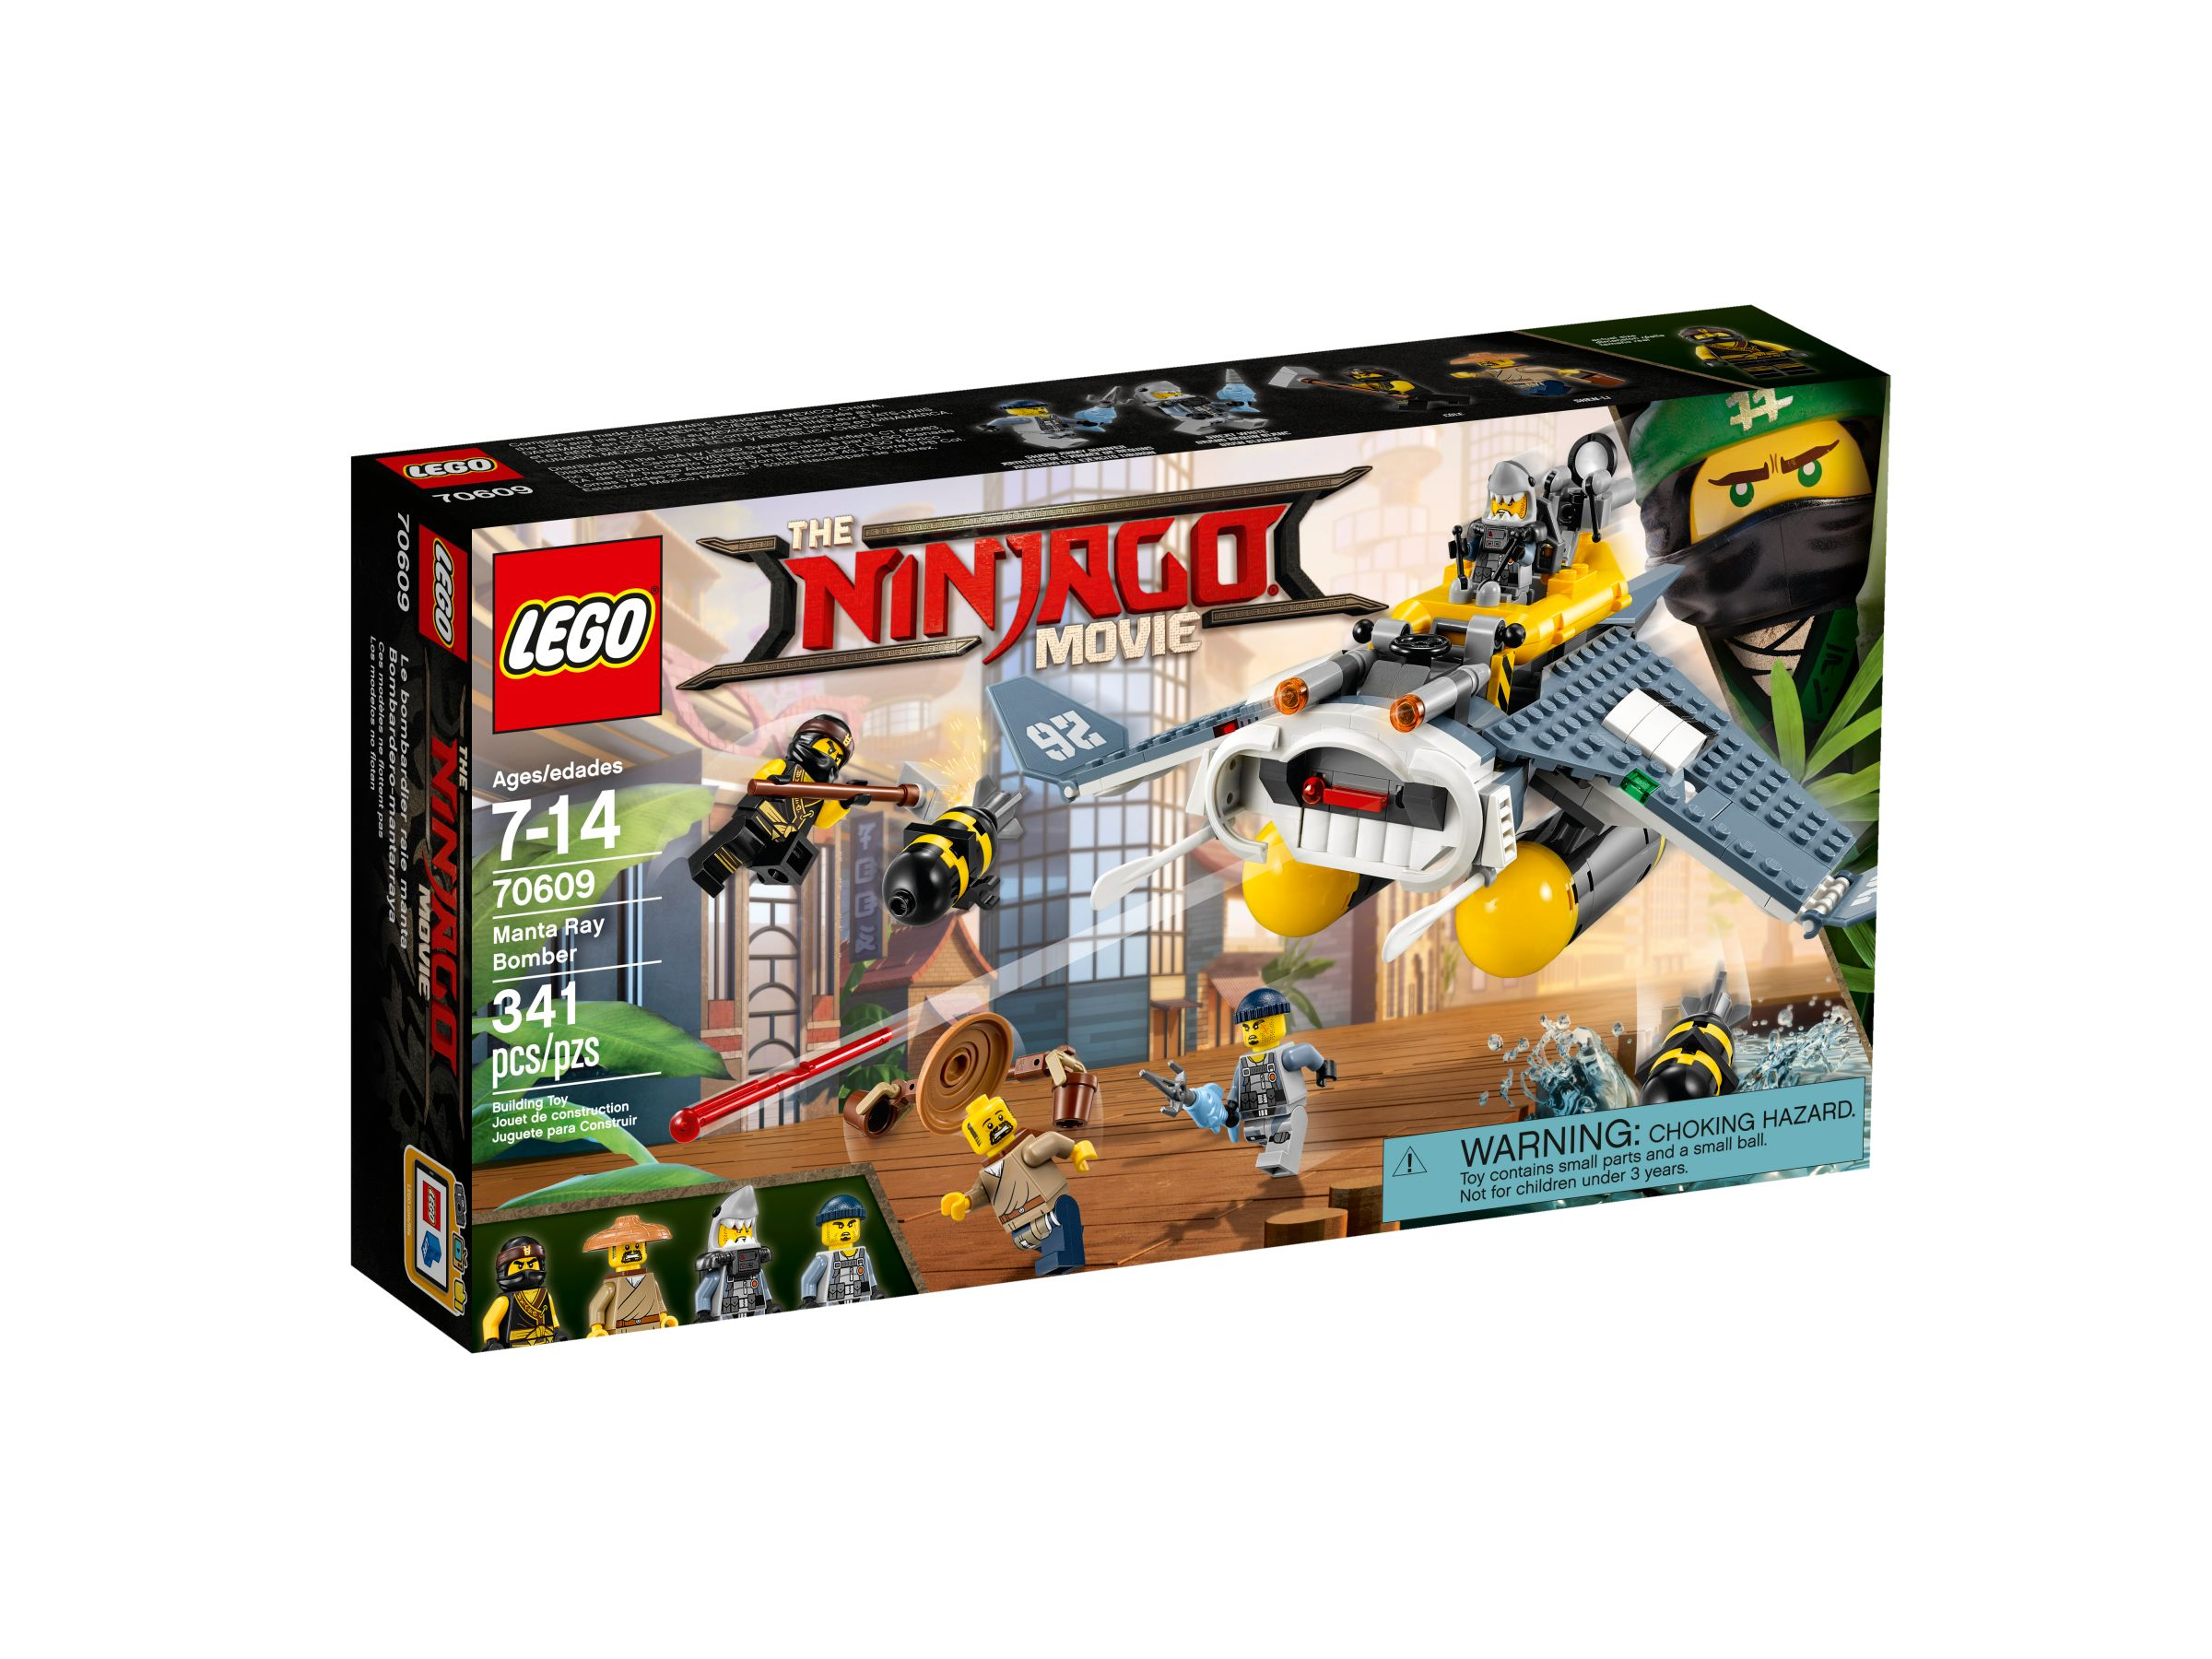 LEGO The LEGO Ninjago Movie 70609 Mantarochen-Flieger LEGO_70609_alt1.jpg